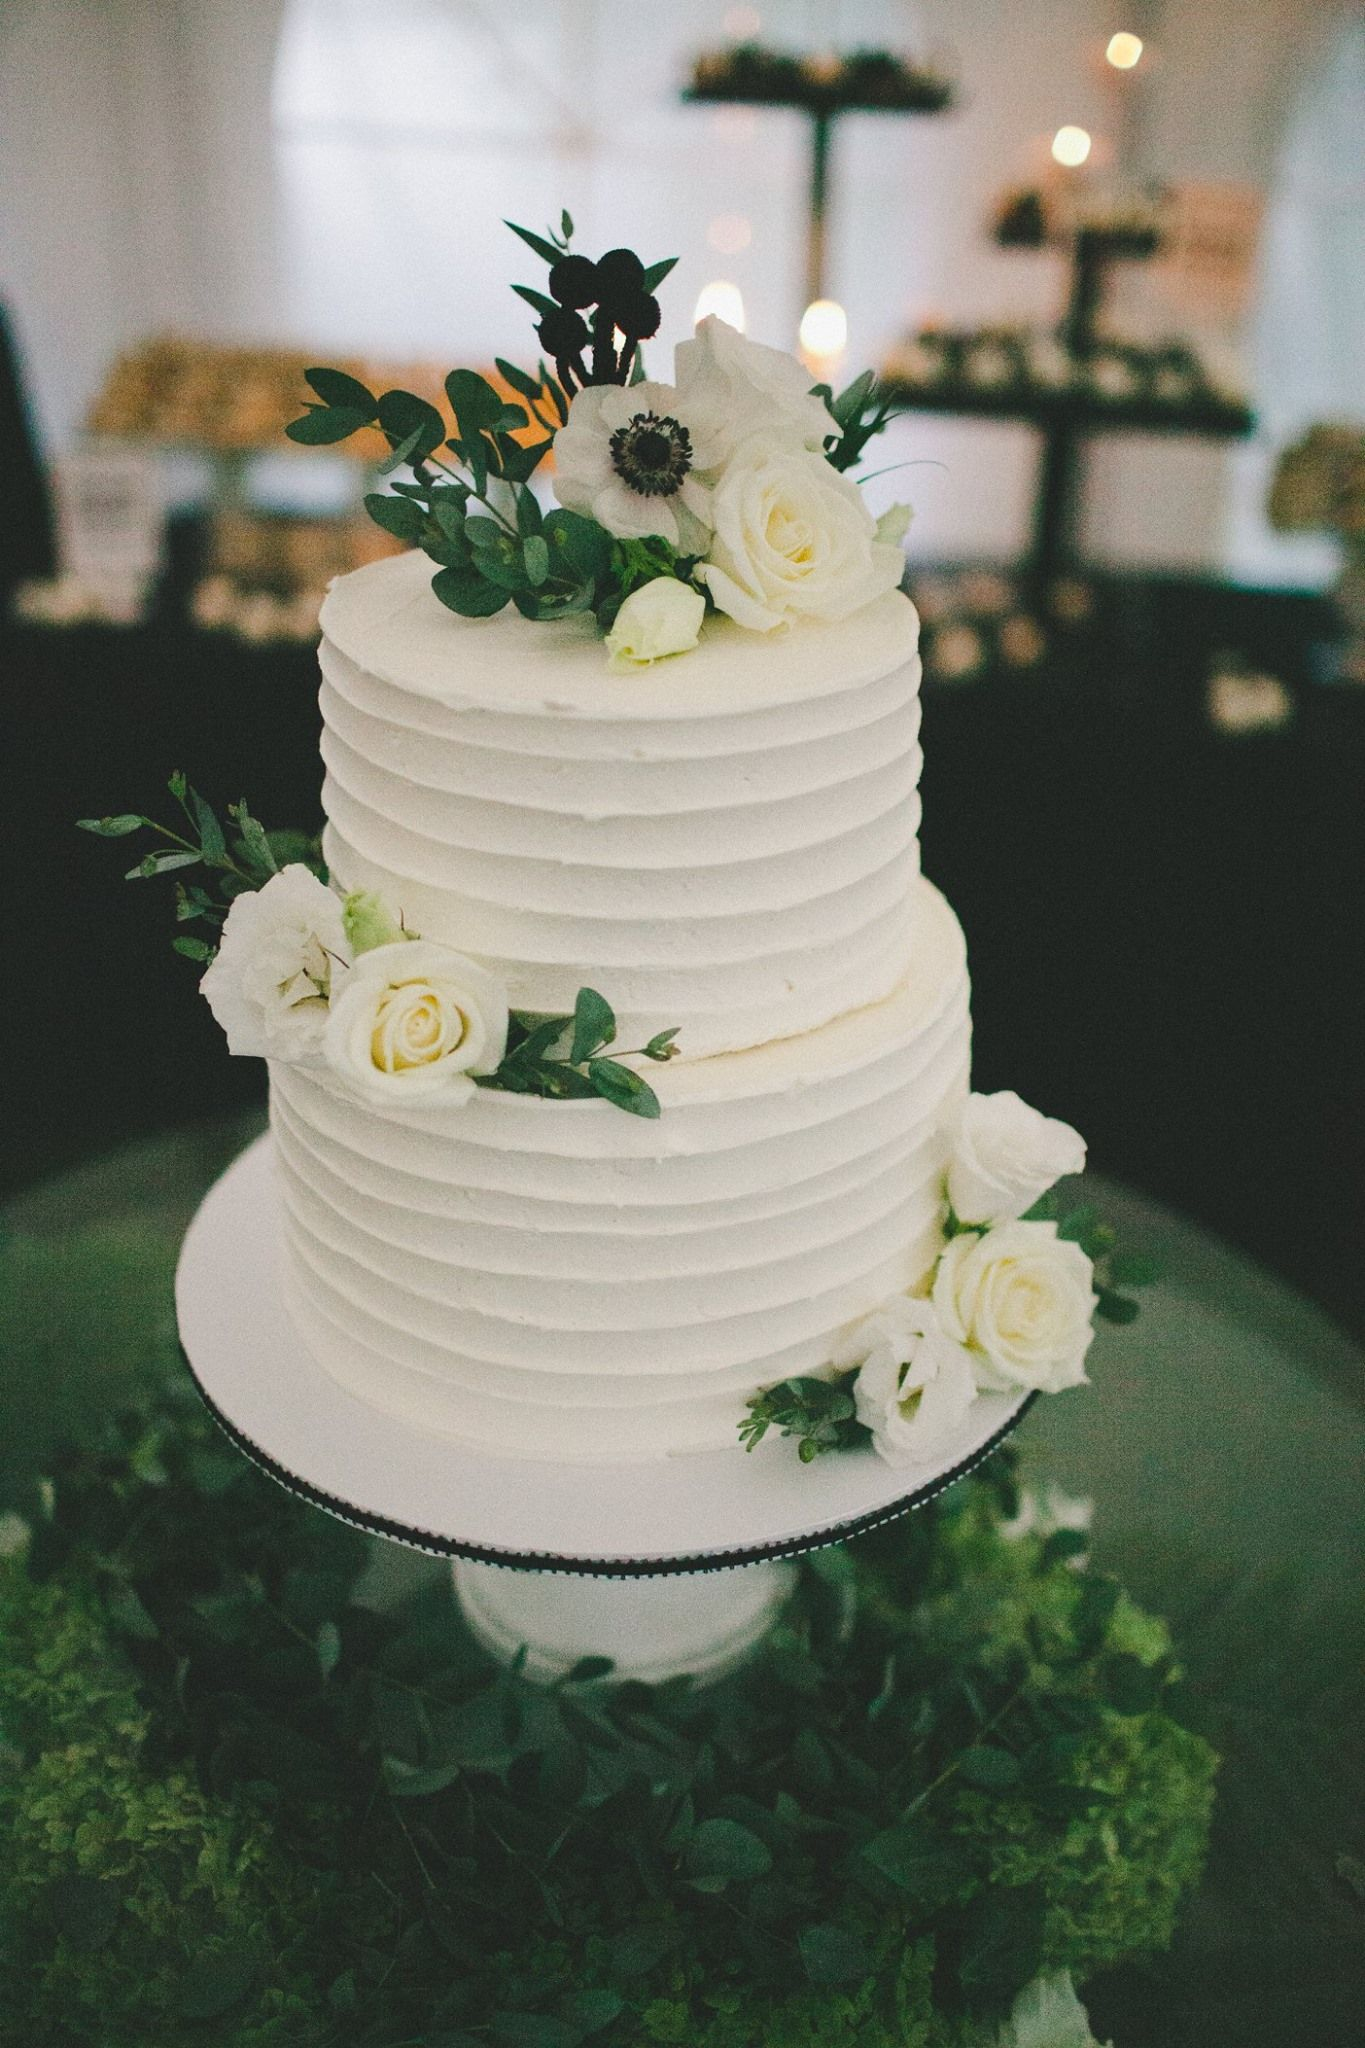 Simple Two Tier Wedding Cake Covered In Real Blossoms And